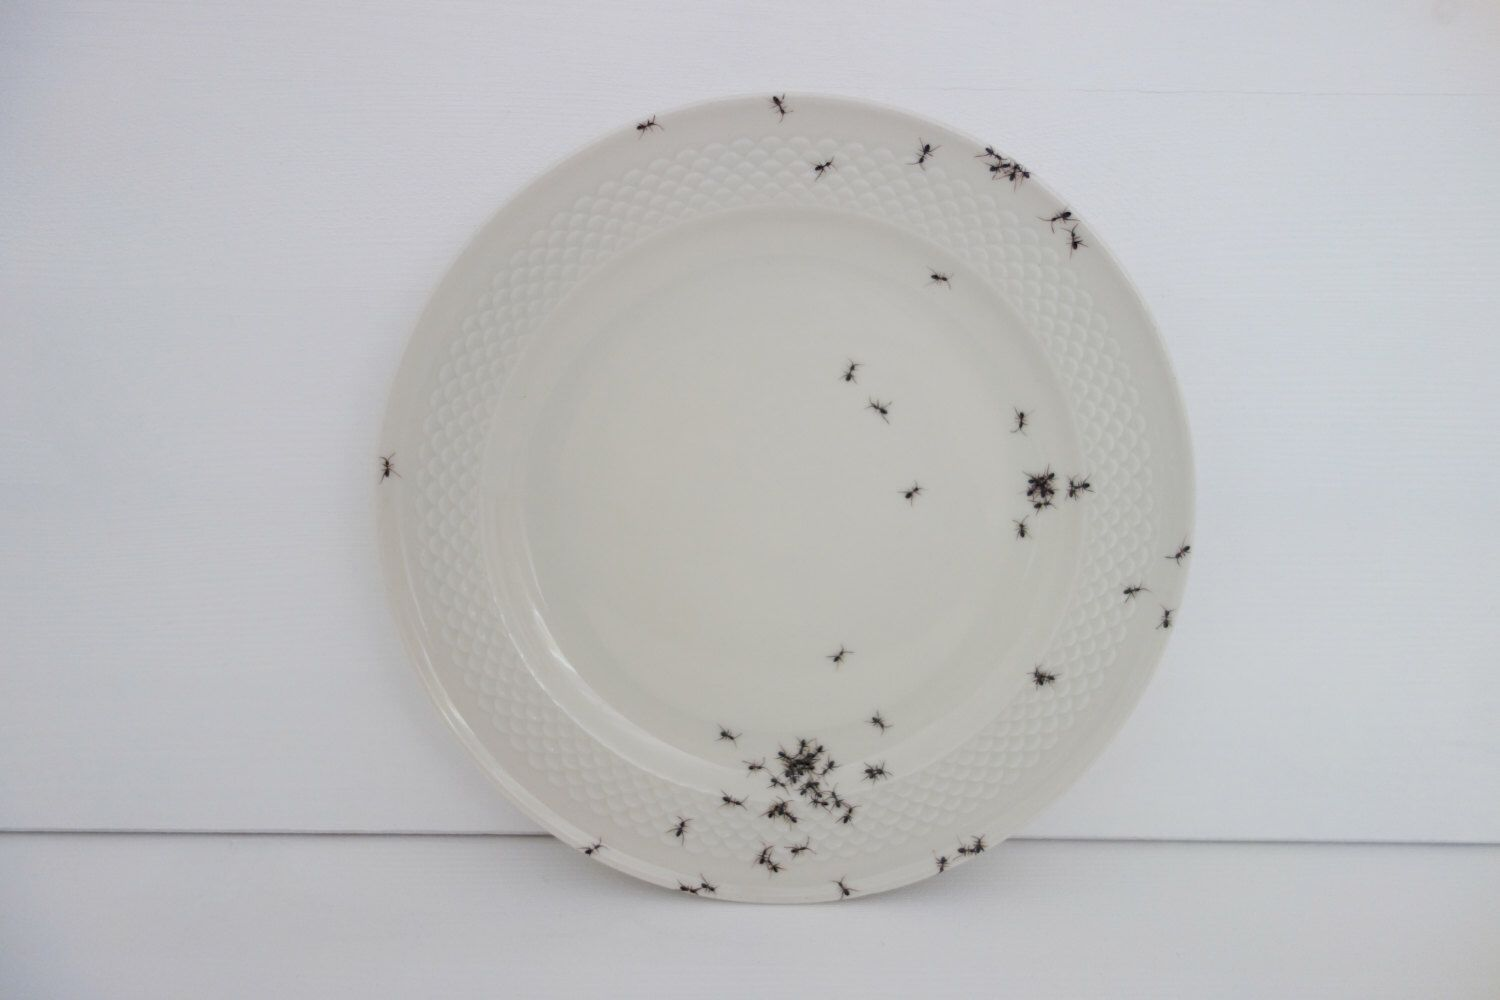 """wall plate """"Chitins Gloss"""" vintage porcelain handpainted with ants by LAPHILIE on Etsy https://www.etsy.com/listing/205443424/wall-plate-chitins-gloss-vintage"""